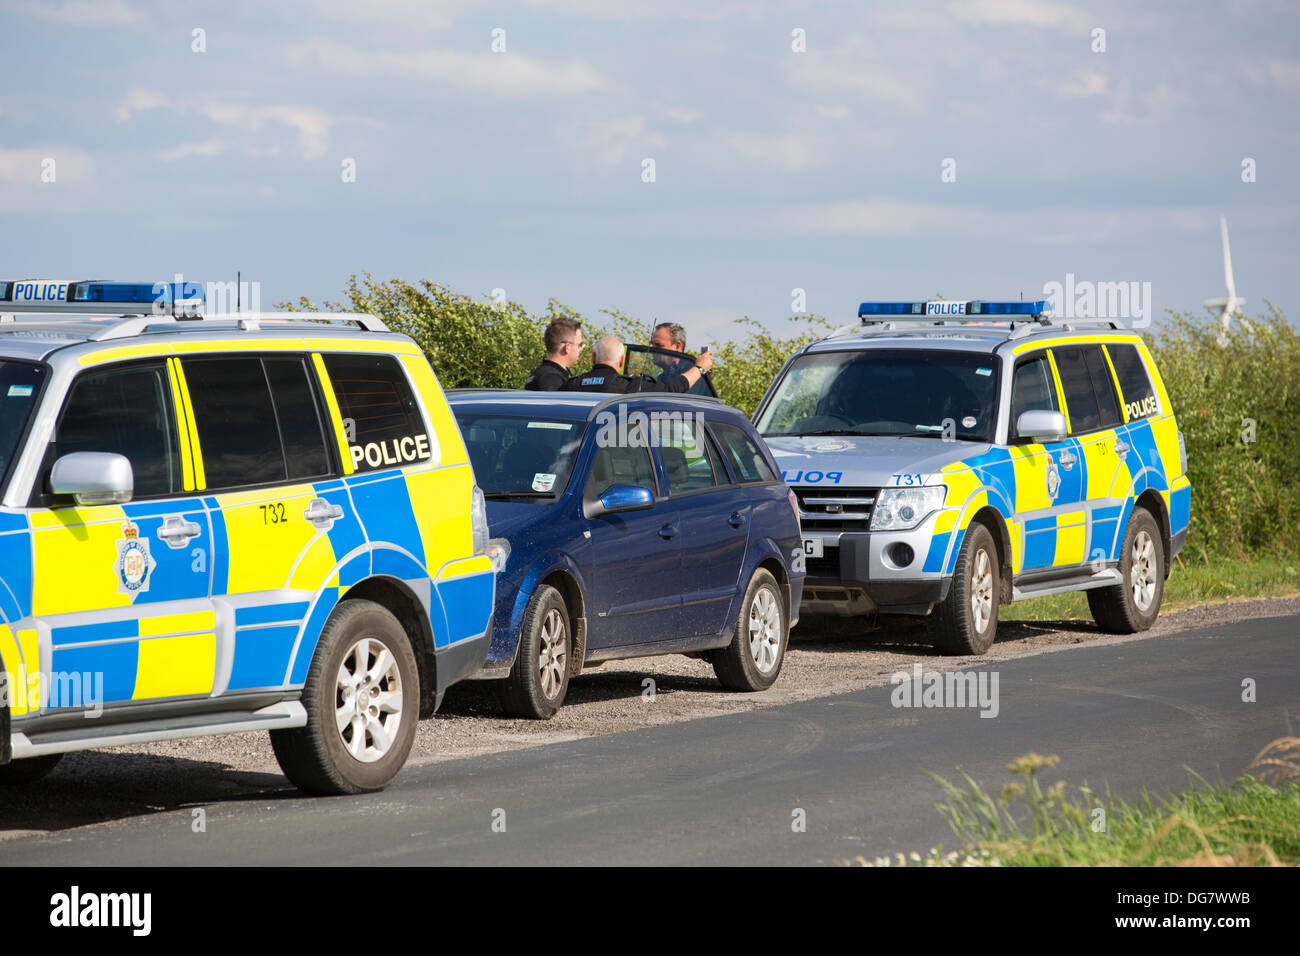 Climate change photographer, Ashley Cooper, being stopped by police - Stock Image